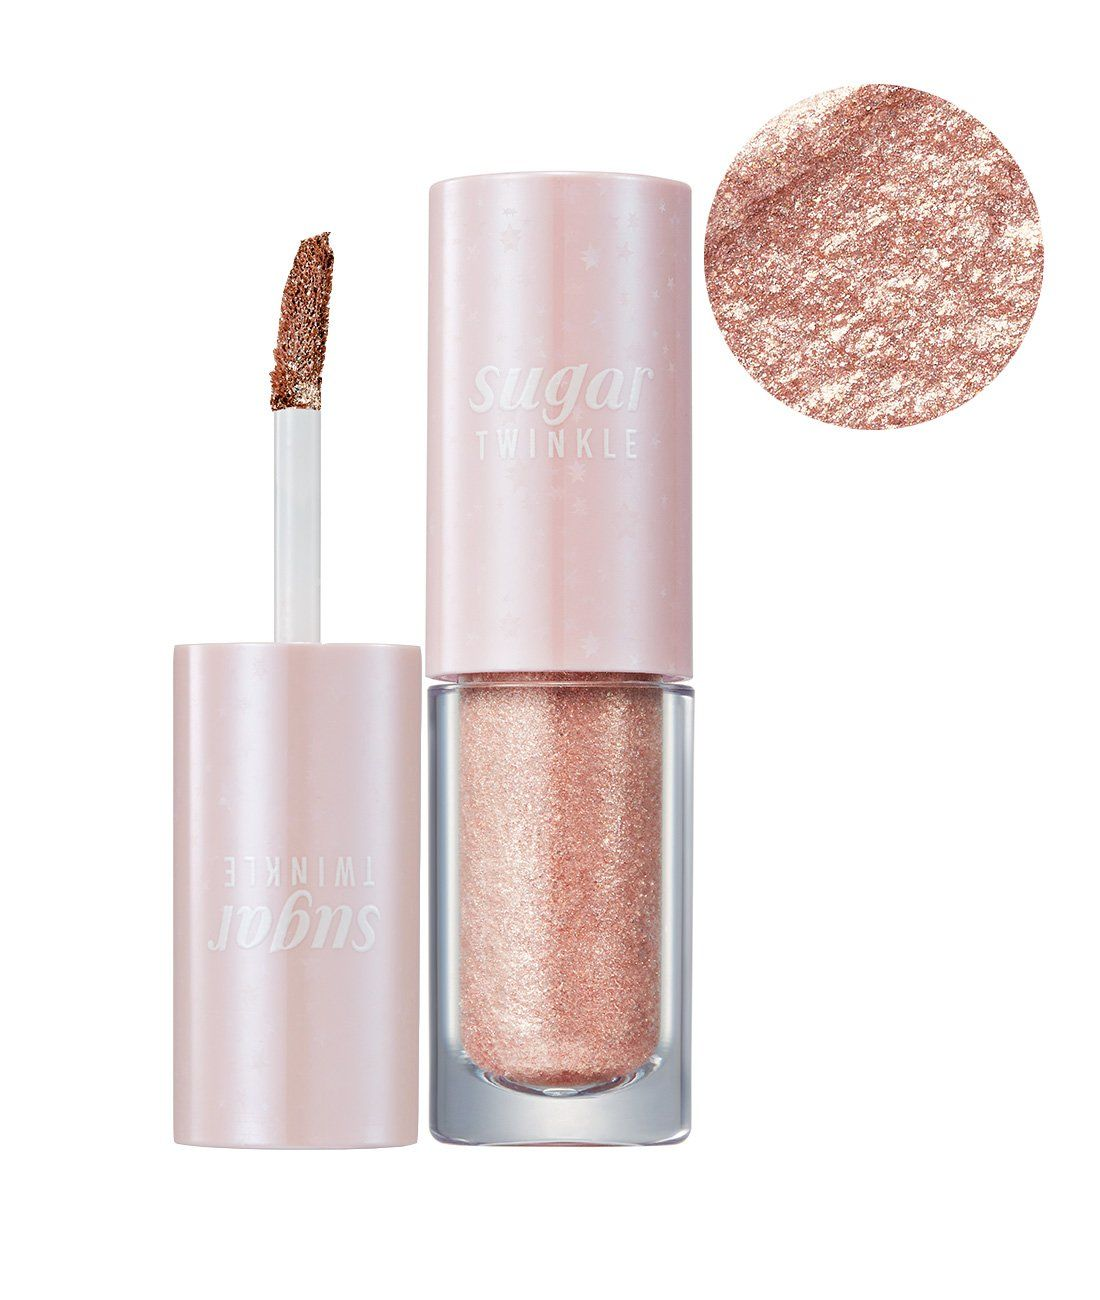 Amazon Com Peripera Sugar Twinkle Liquid Shadow 0 11 Ounce 003 Kitten Beige Beauty Tati Said It S Better Than Stila Liquid Shadow French Flowers Eyeshadow